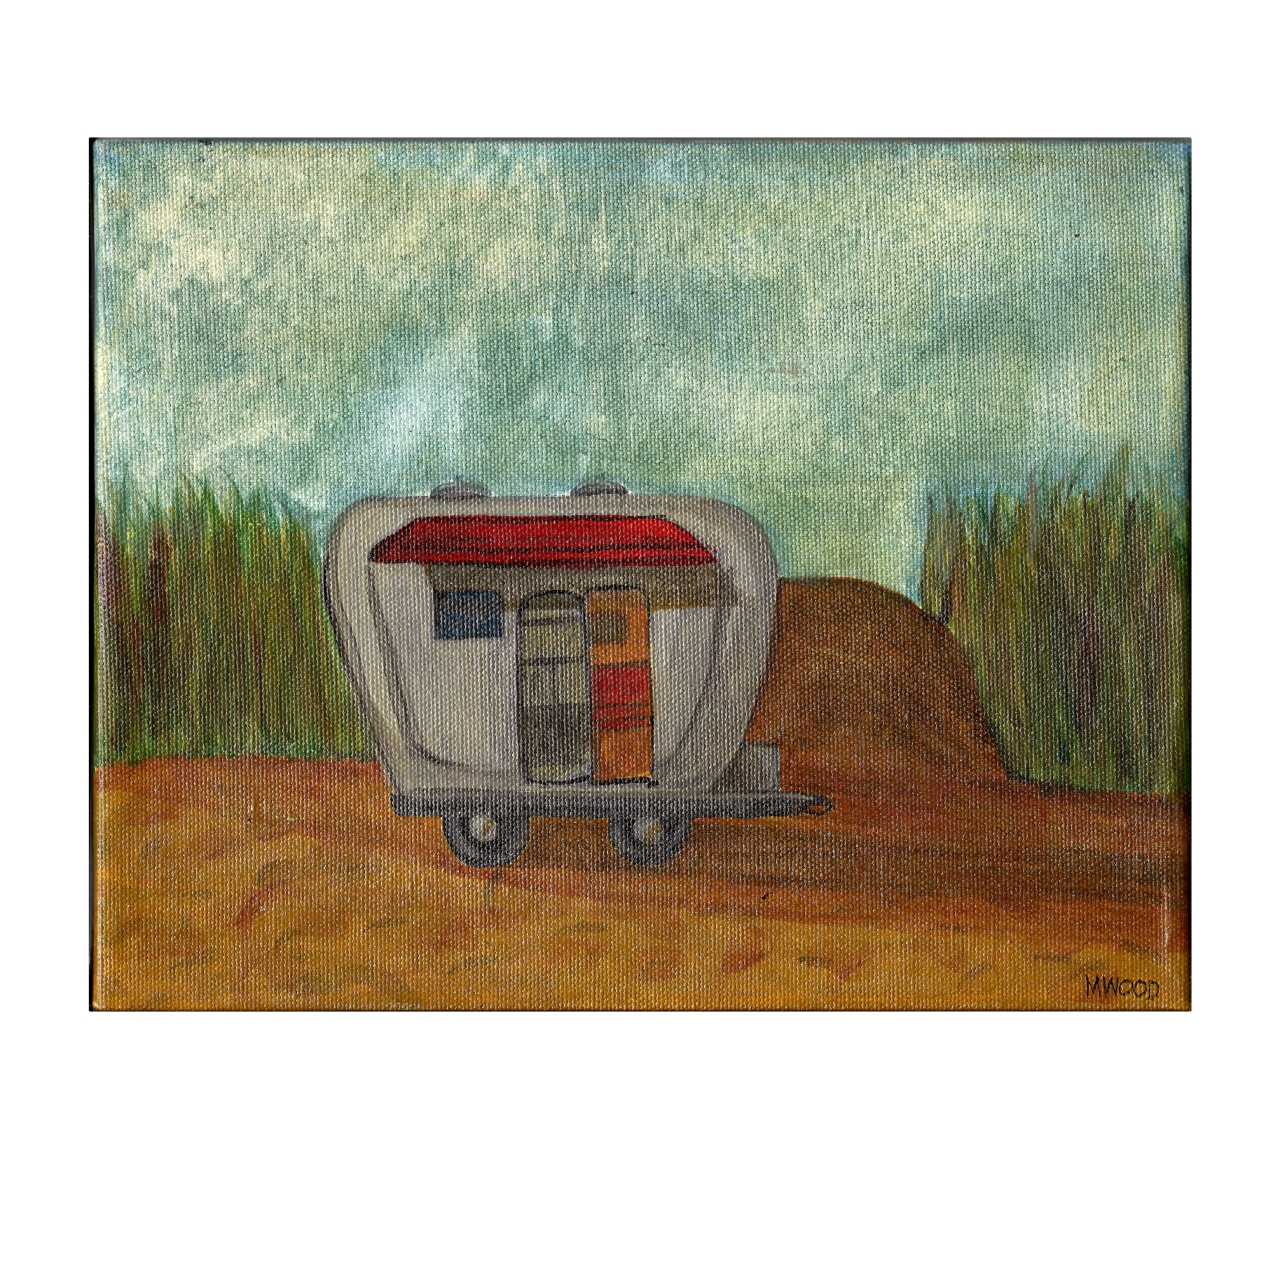 M WOOD AIRSTREAM DREAMS BEACH GRASS insta